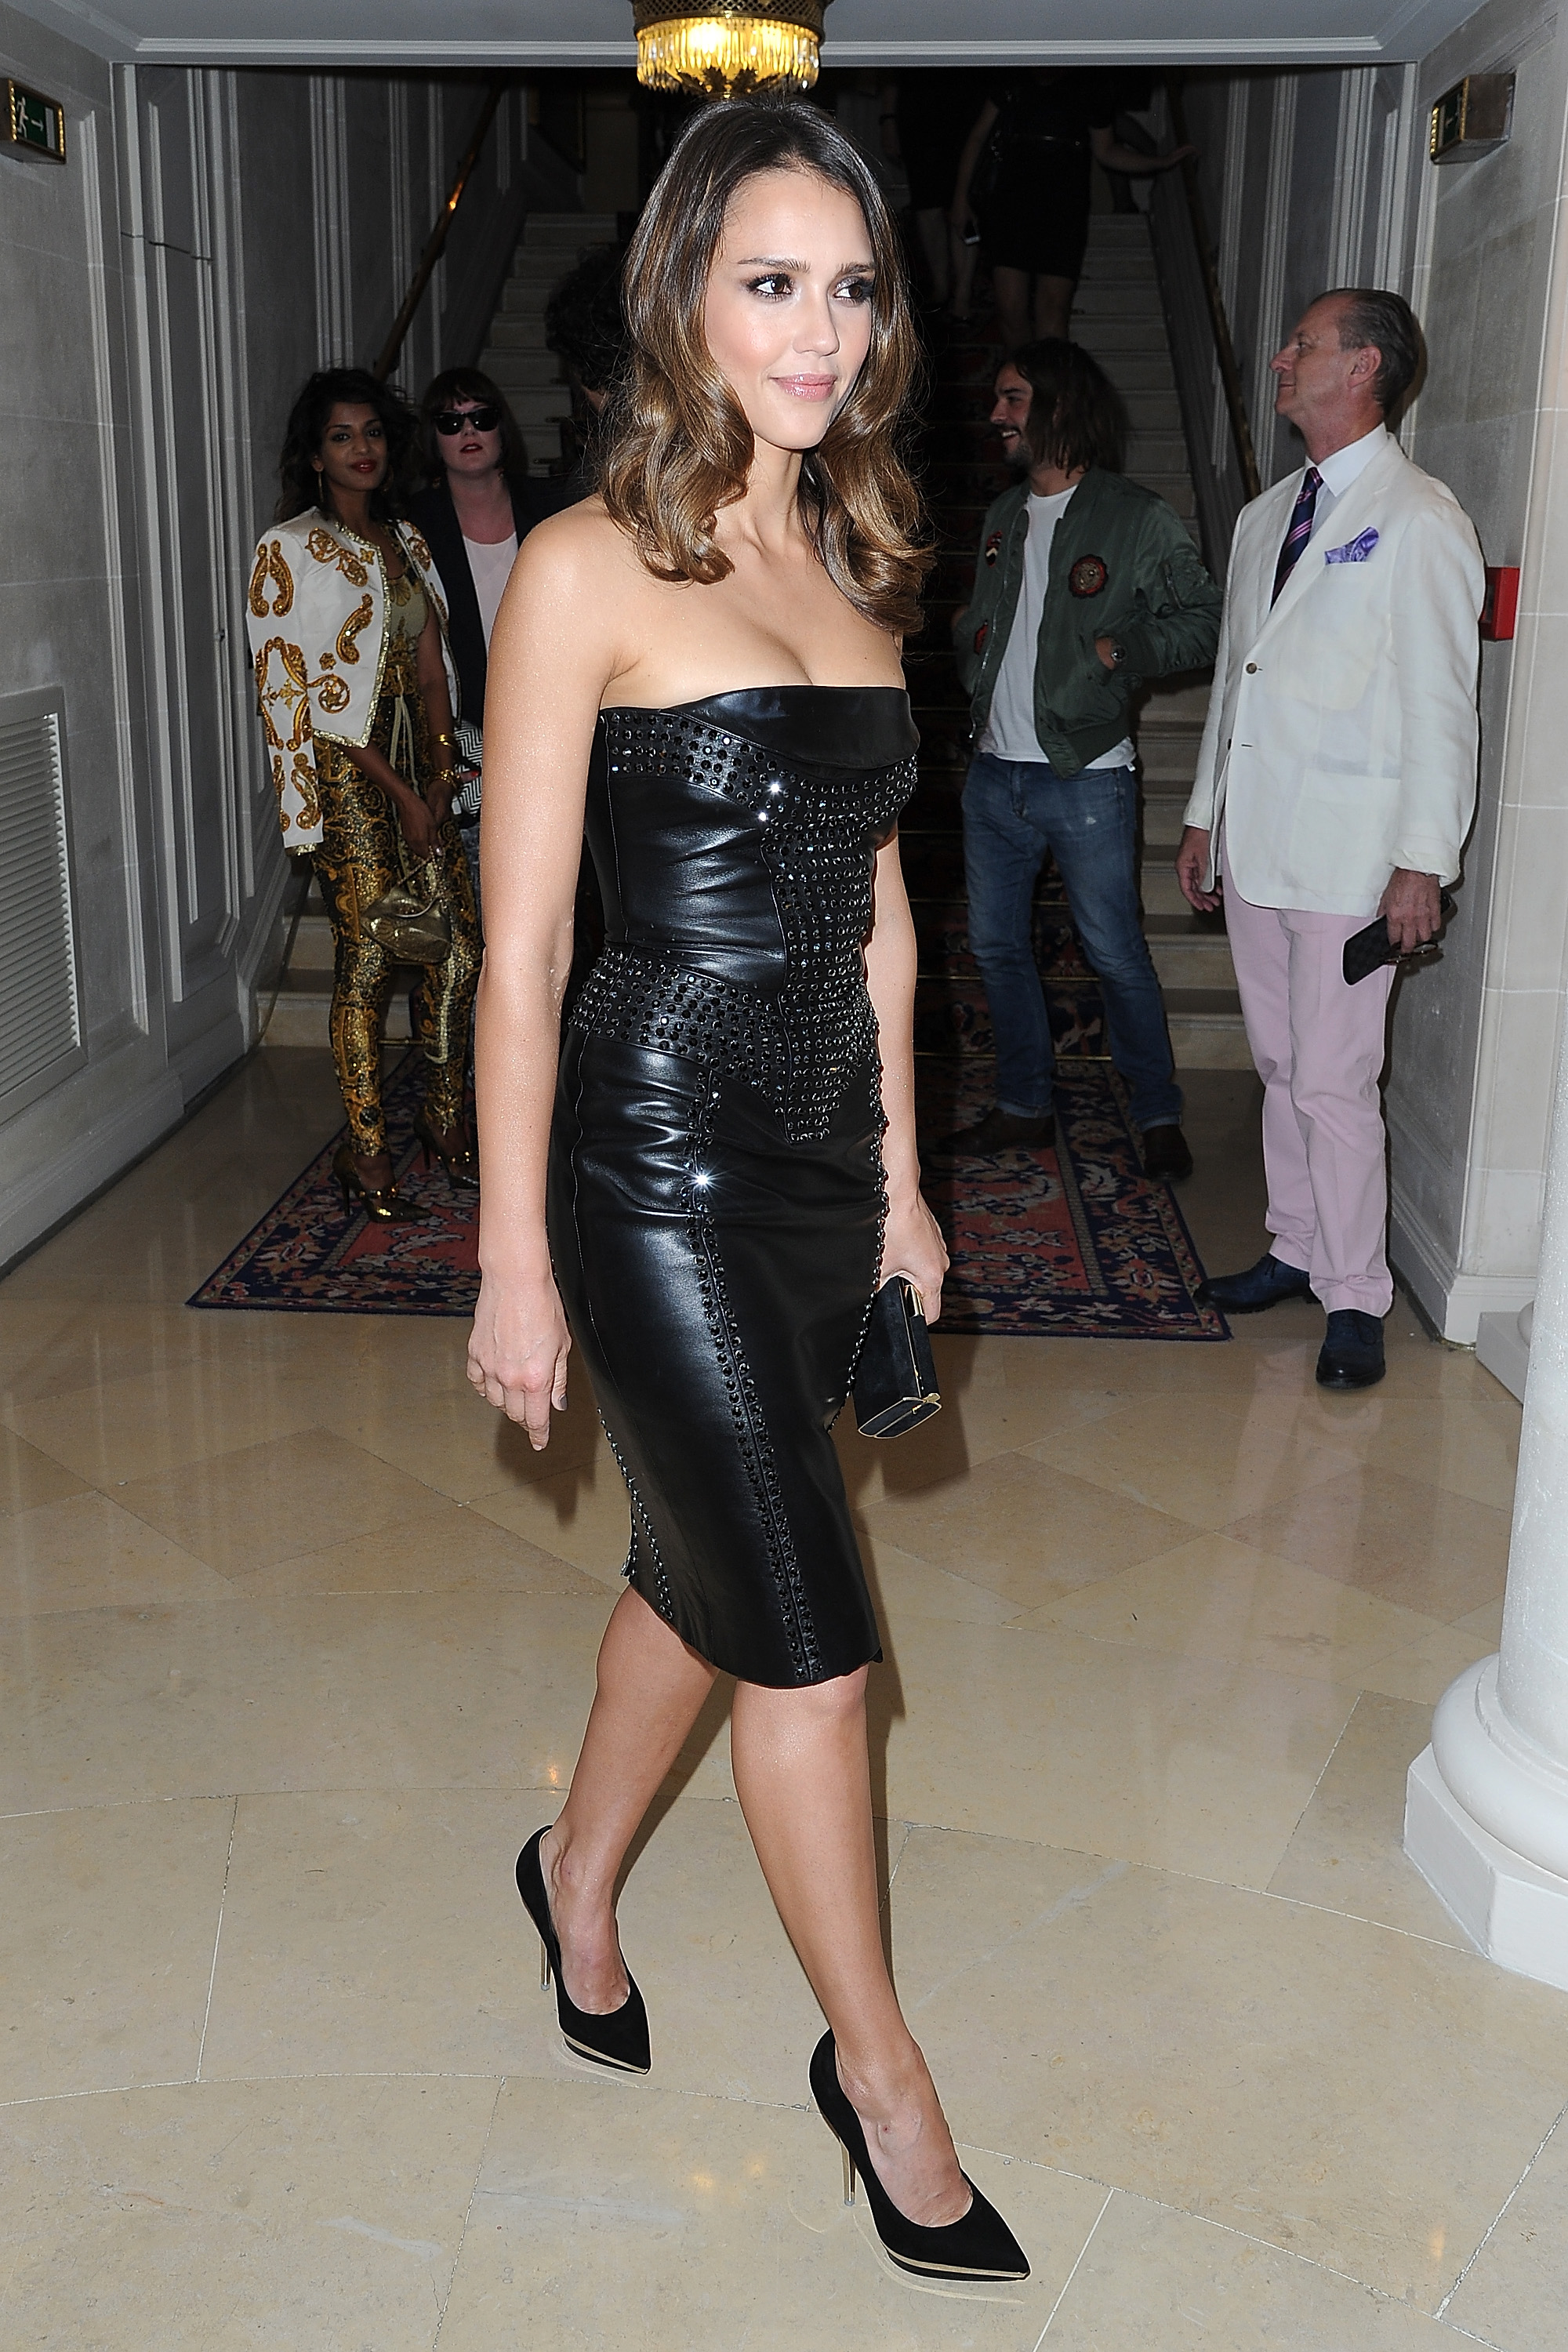 Jessica Alba showed off her curves in a tight black leather dress for the Versace show for Paris Fashion Week.